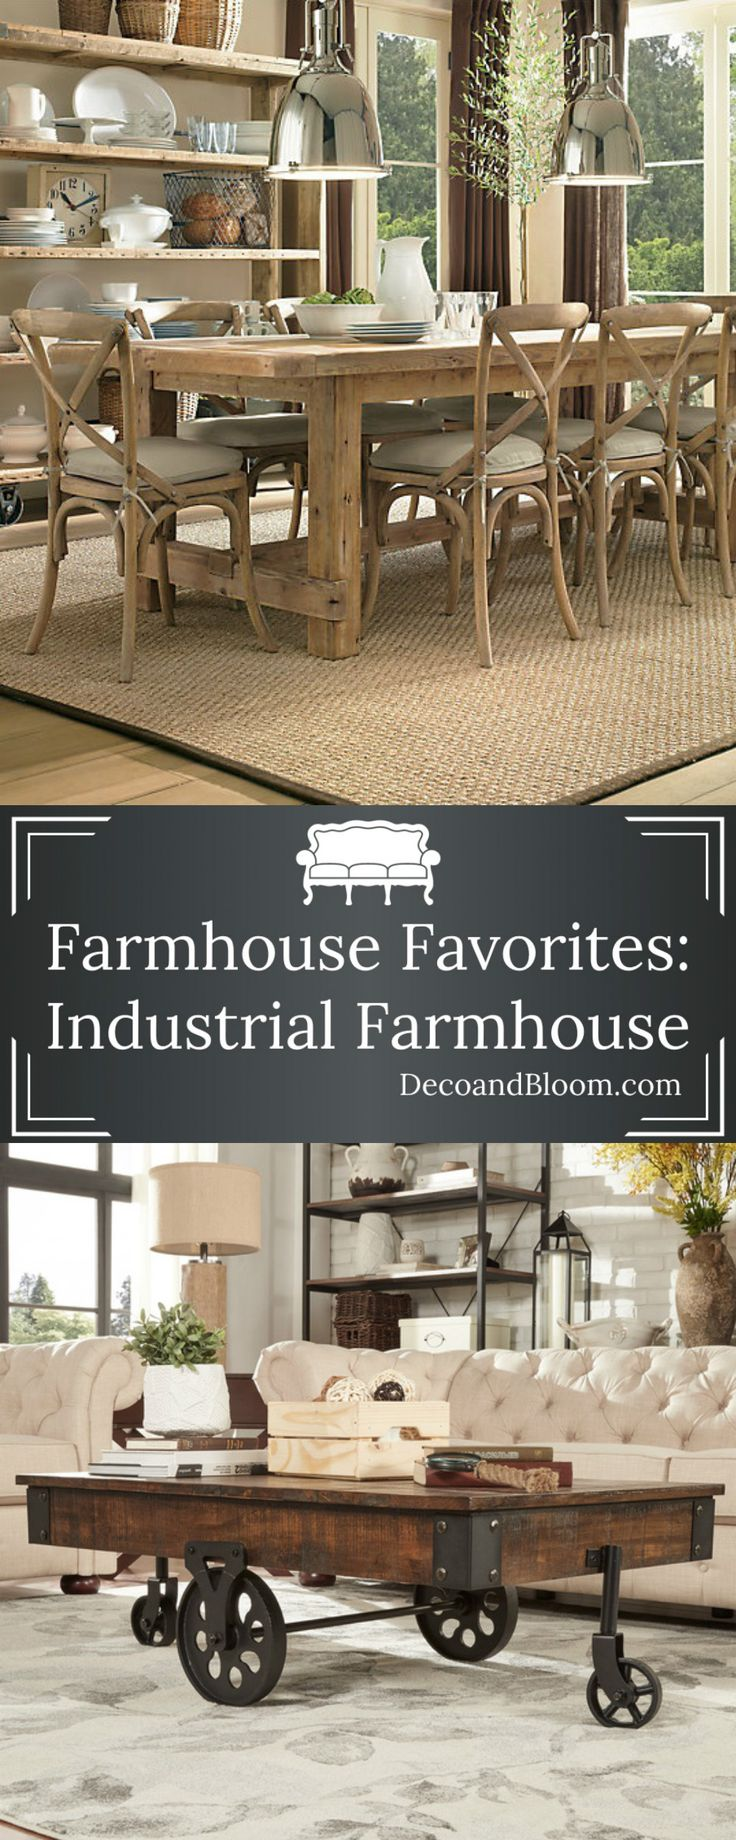 17 ideas about industrial farmhouse on pinterest modern for Industrial farmhouse exterior